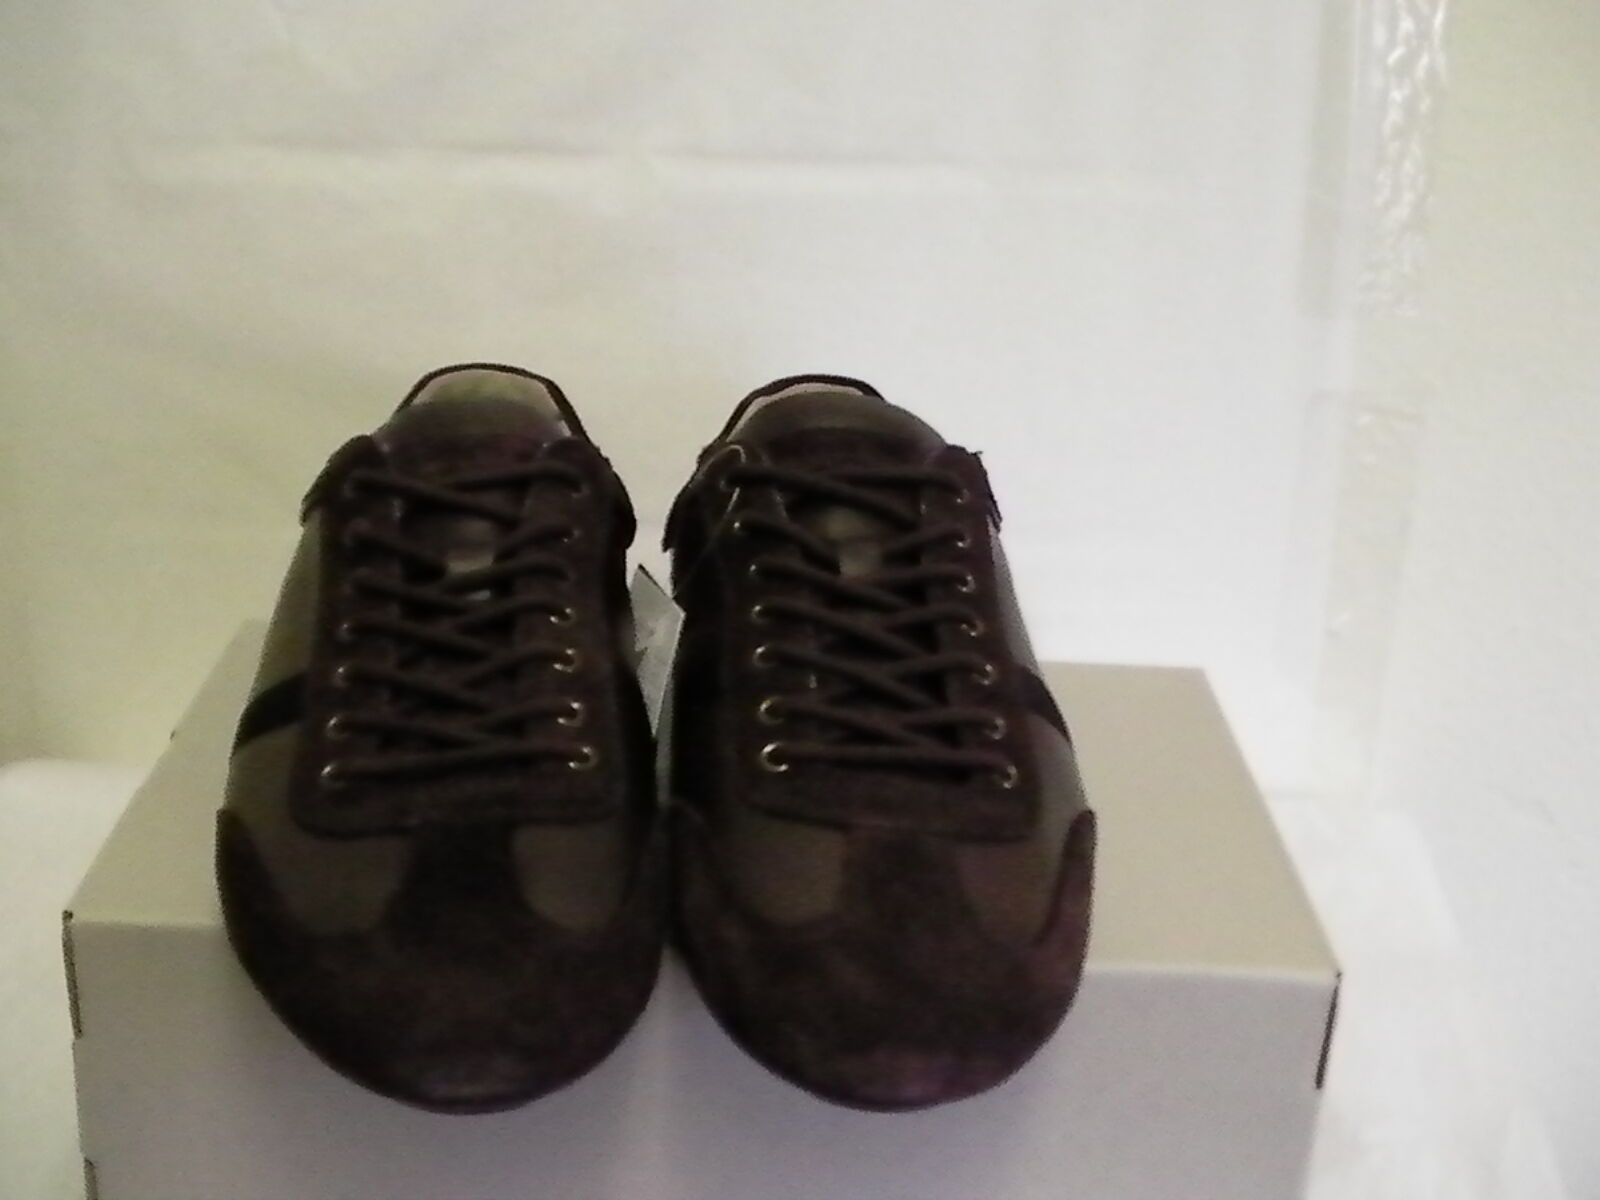 Lacoste mens shoes berryman srm lth leather dark brown brown brown size 12 us new b17768